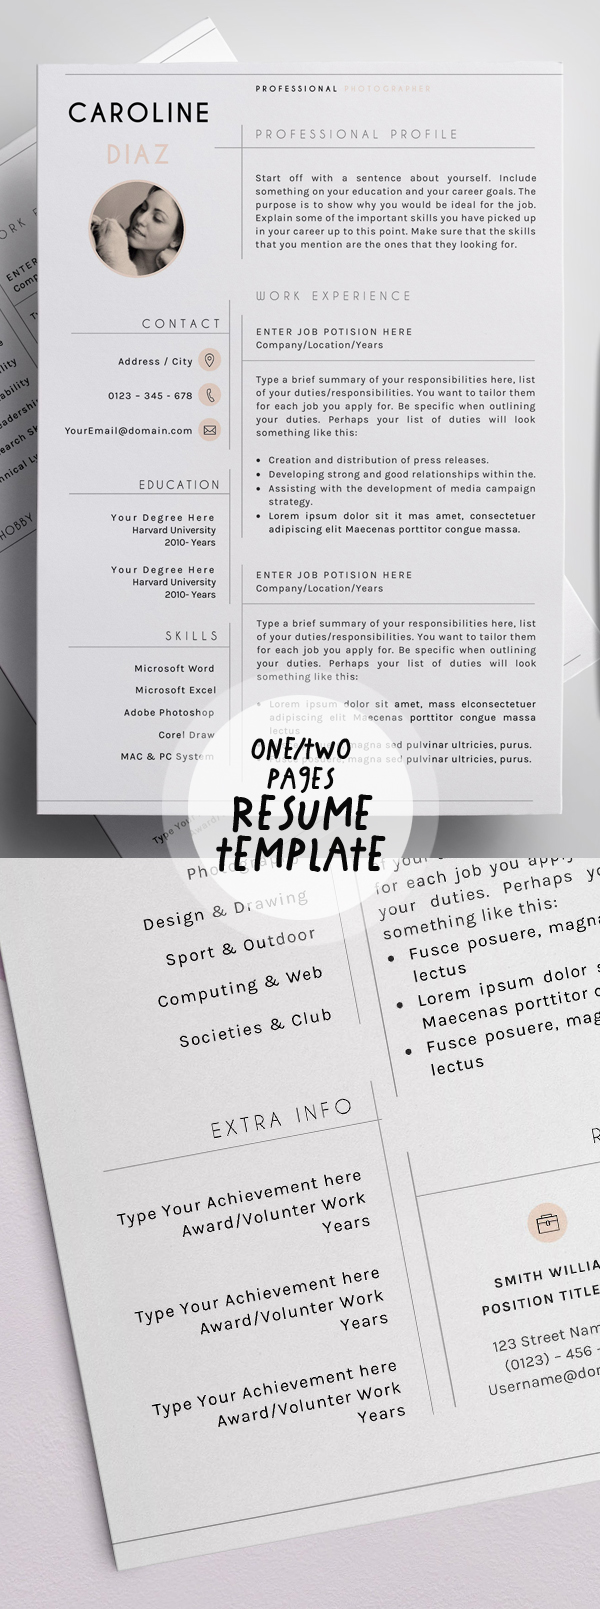 best resume templates for design graphic junction one template freelance makeup artist Resume Best One Page Resume Template